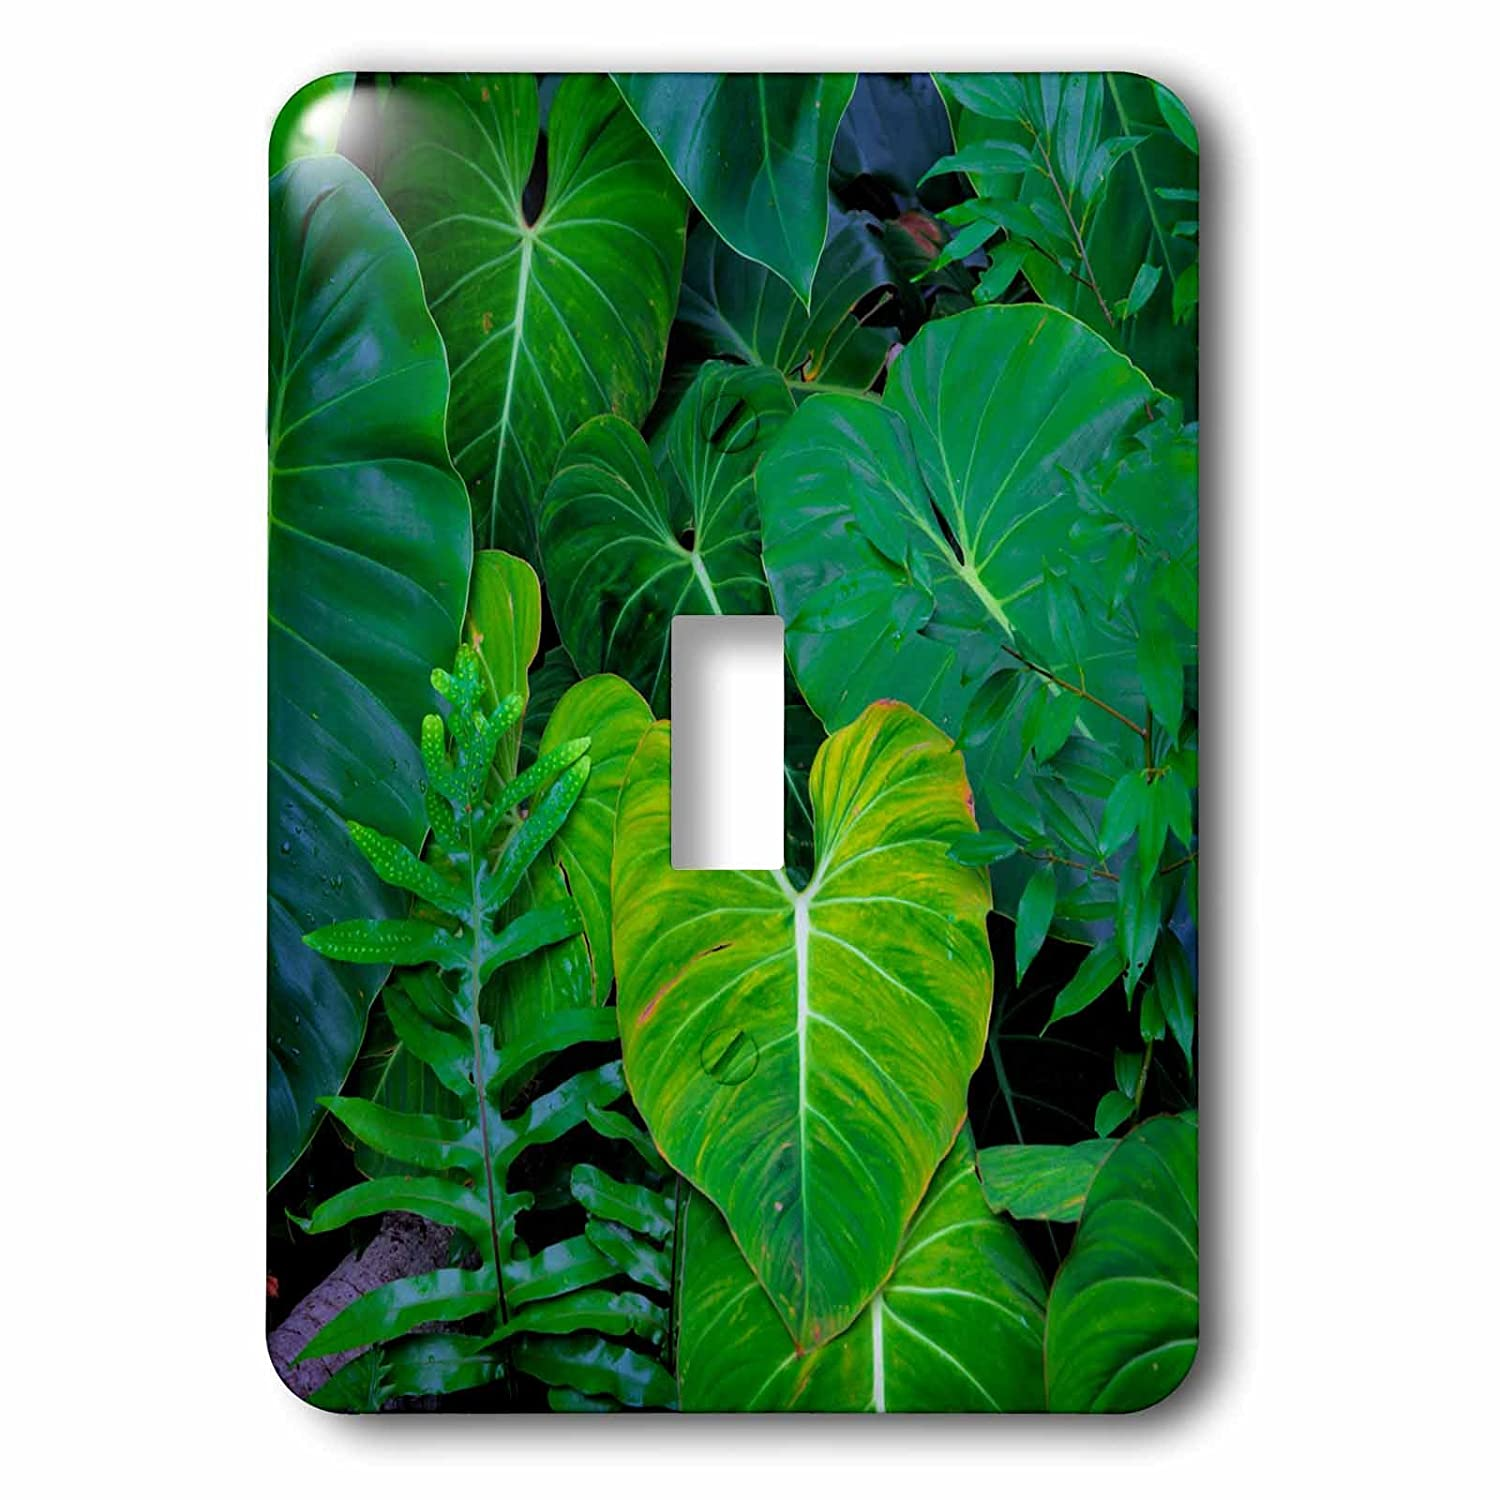 Tropical Green Philodendrons Toggle Switch Multicolor Oahu 3dRose lsp/_278963/_1 USA Hawaii